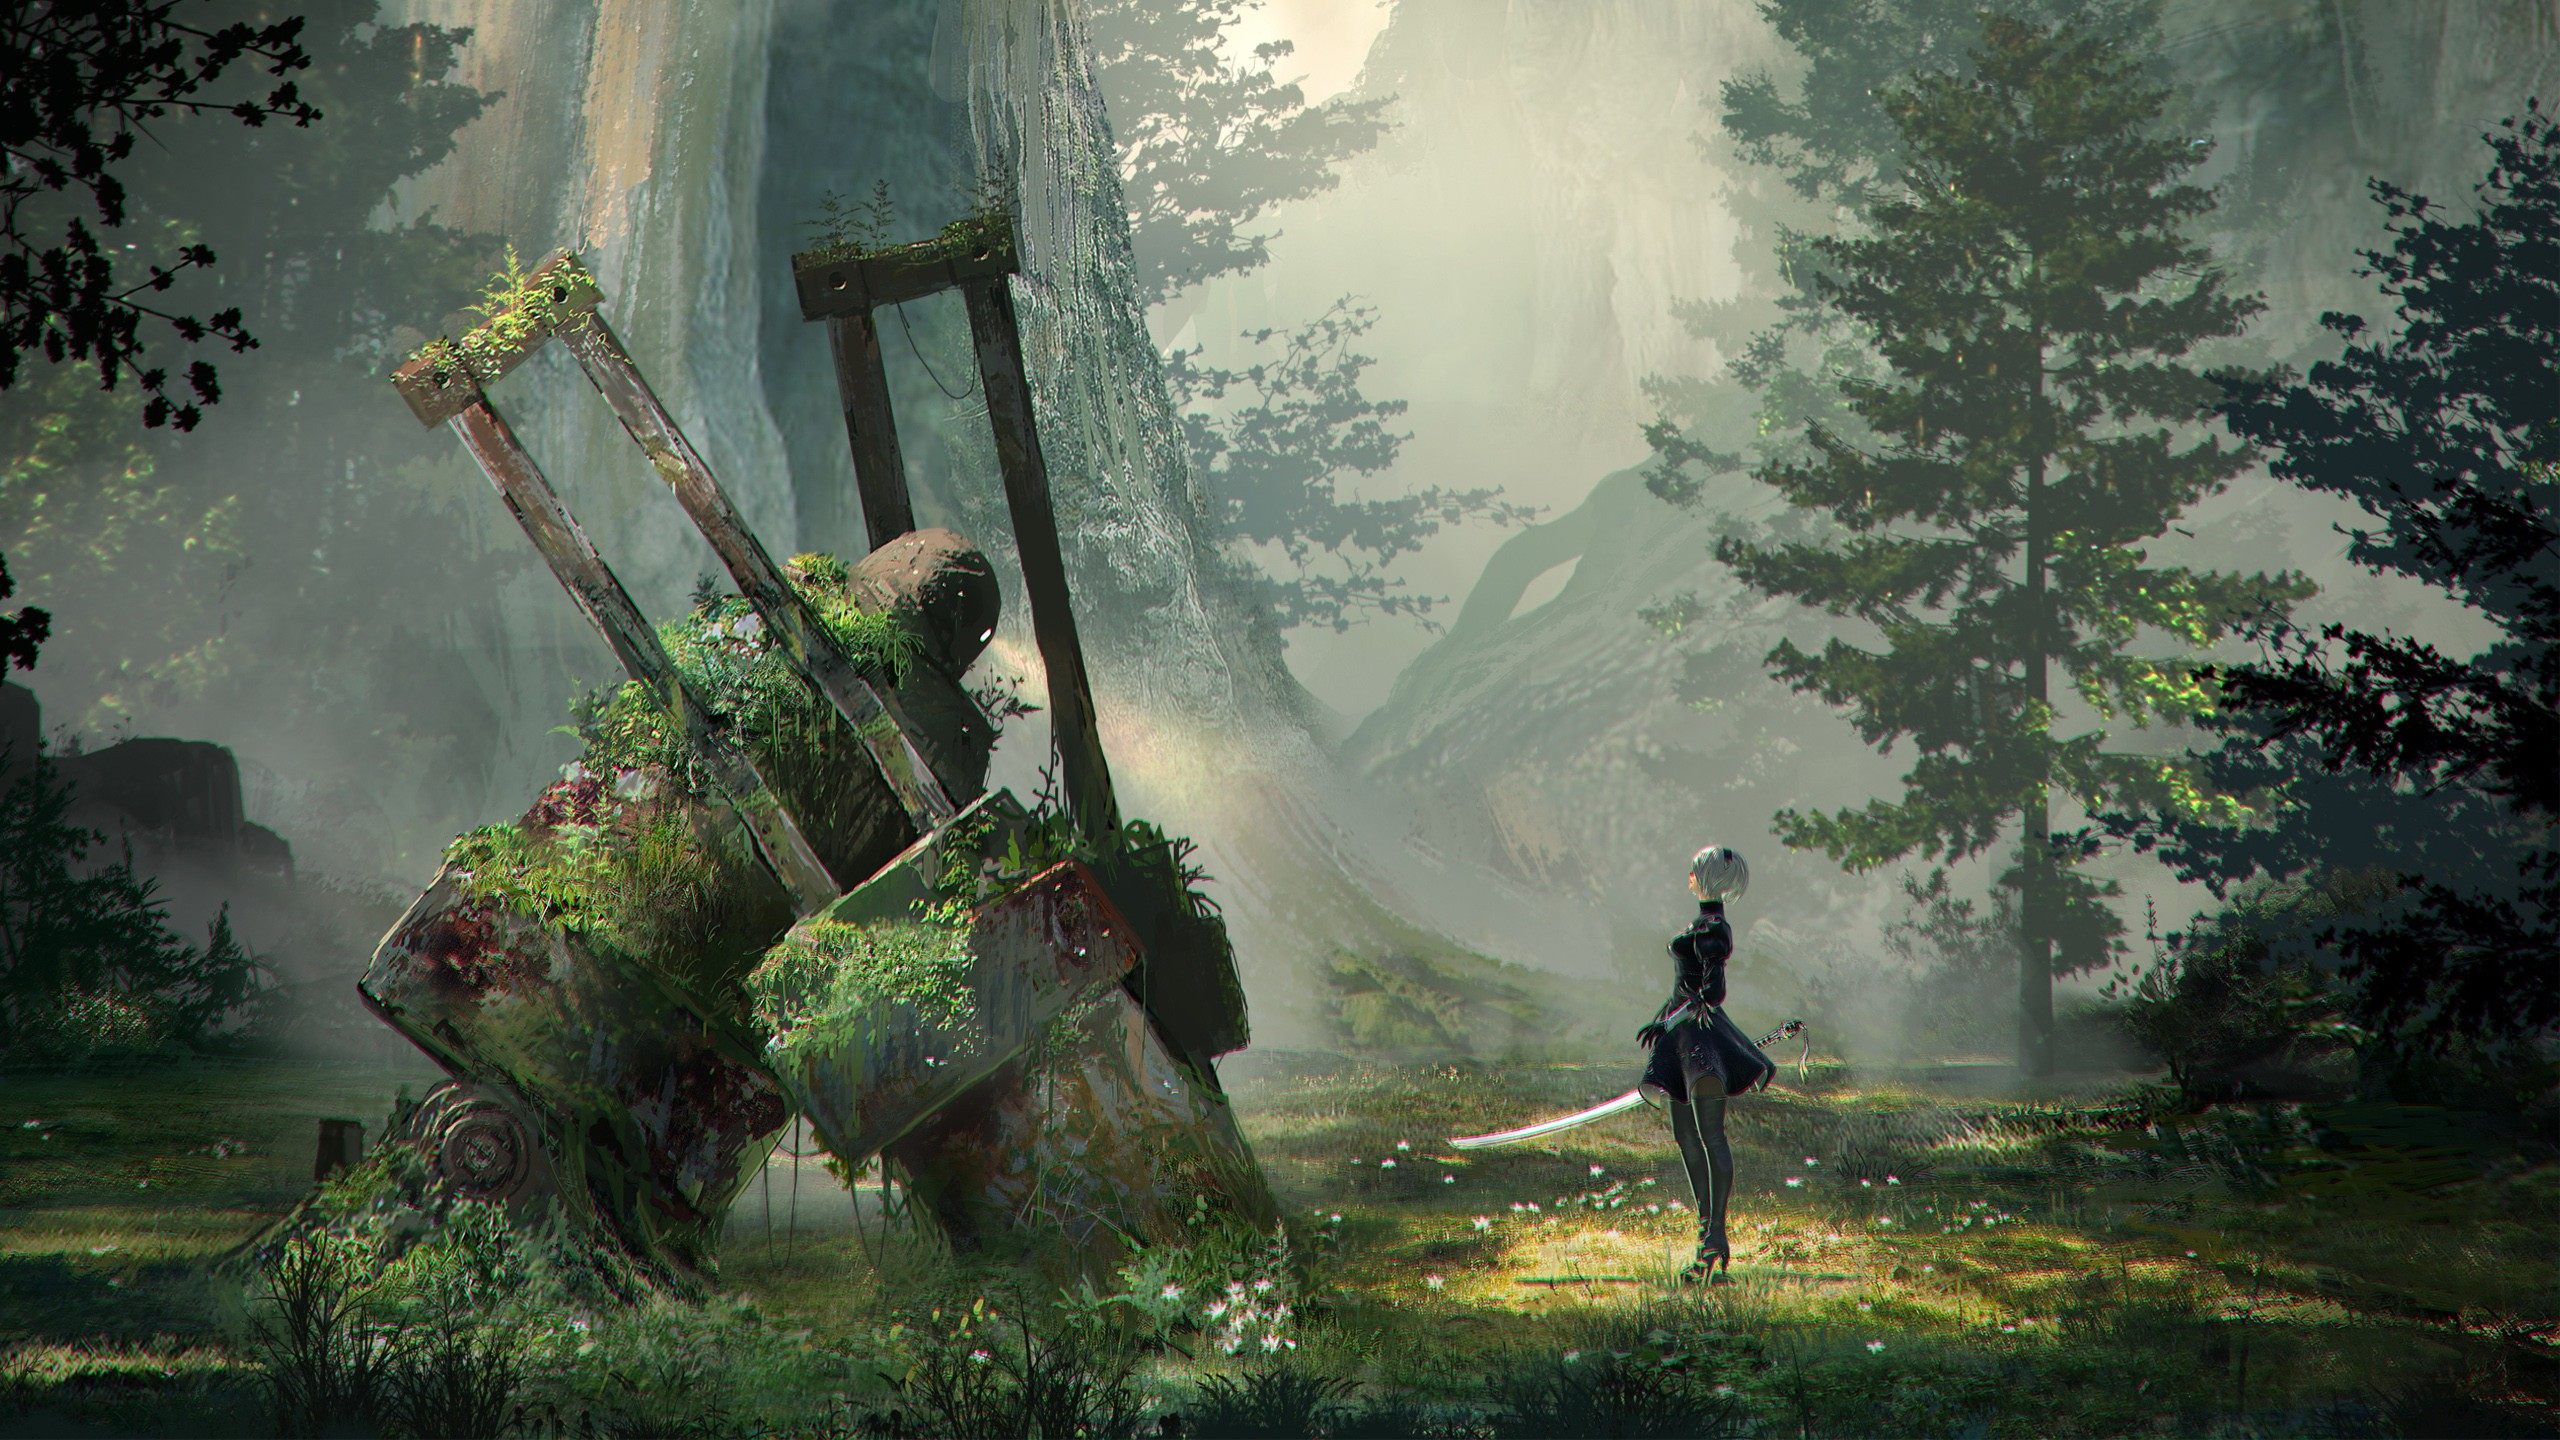 Iphone 4 Wallpapers Hd 3d Nier Automata Concept Art Wallpapers Hd Wallpapers Id